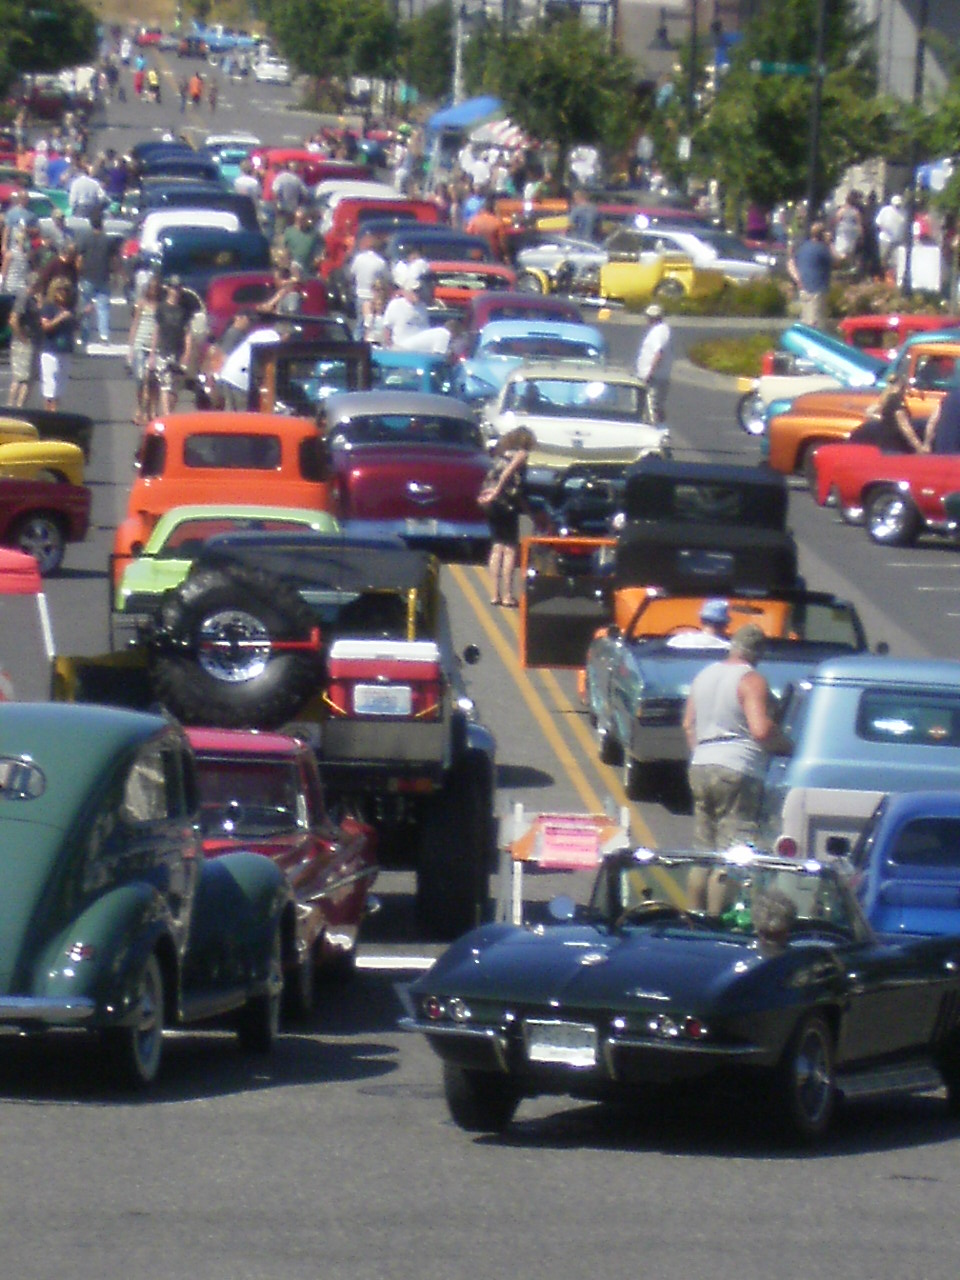 Parade of Cars - Car Show Aug 17 2014